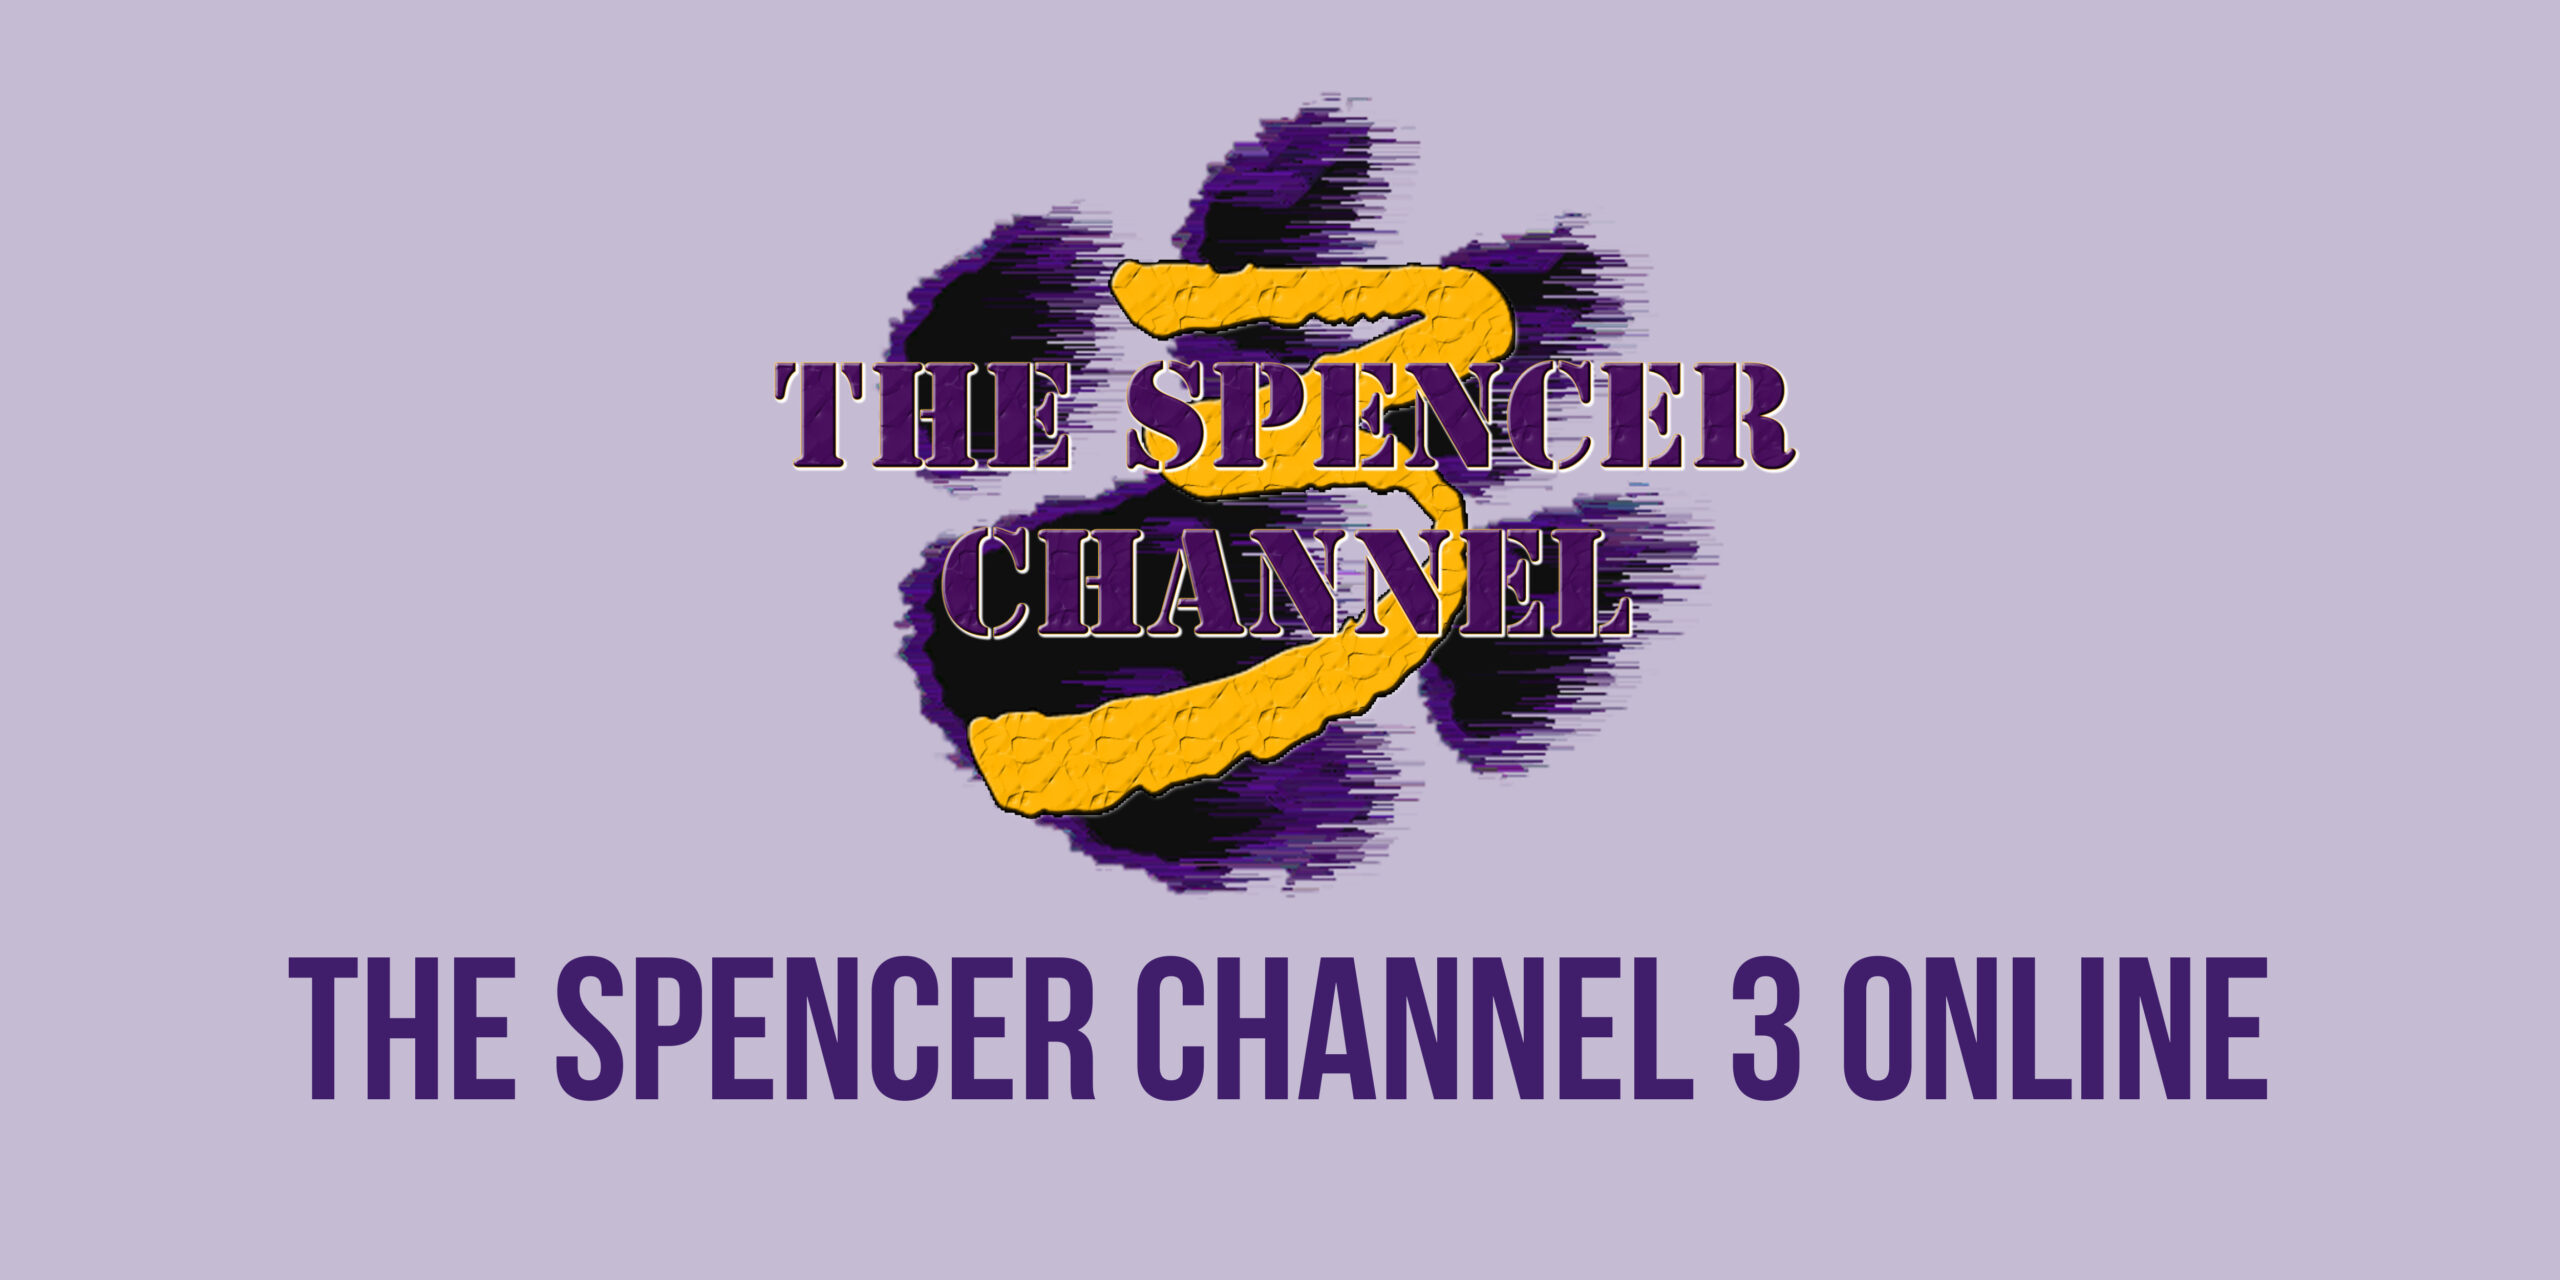 The Spencer Channel 3 Online